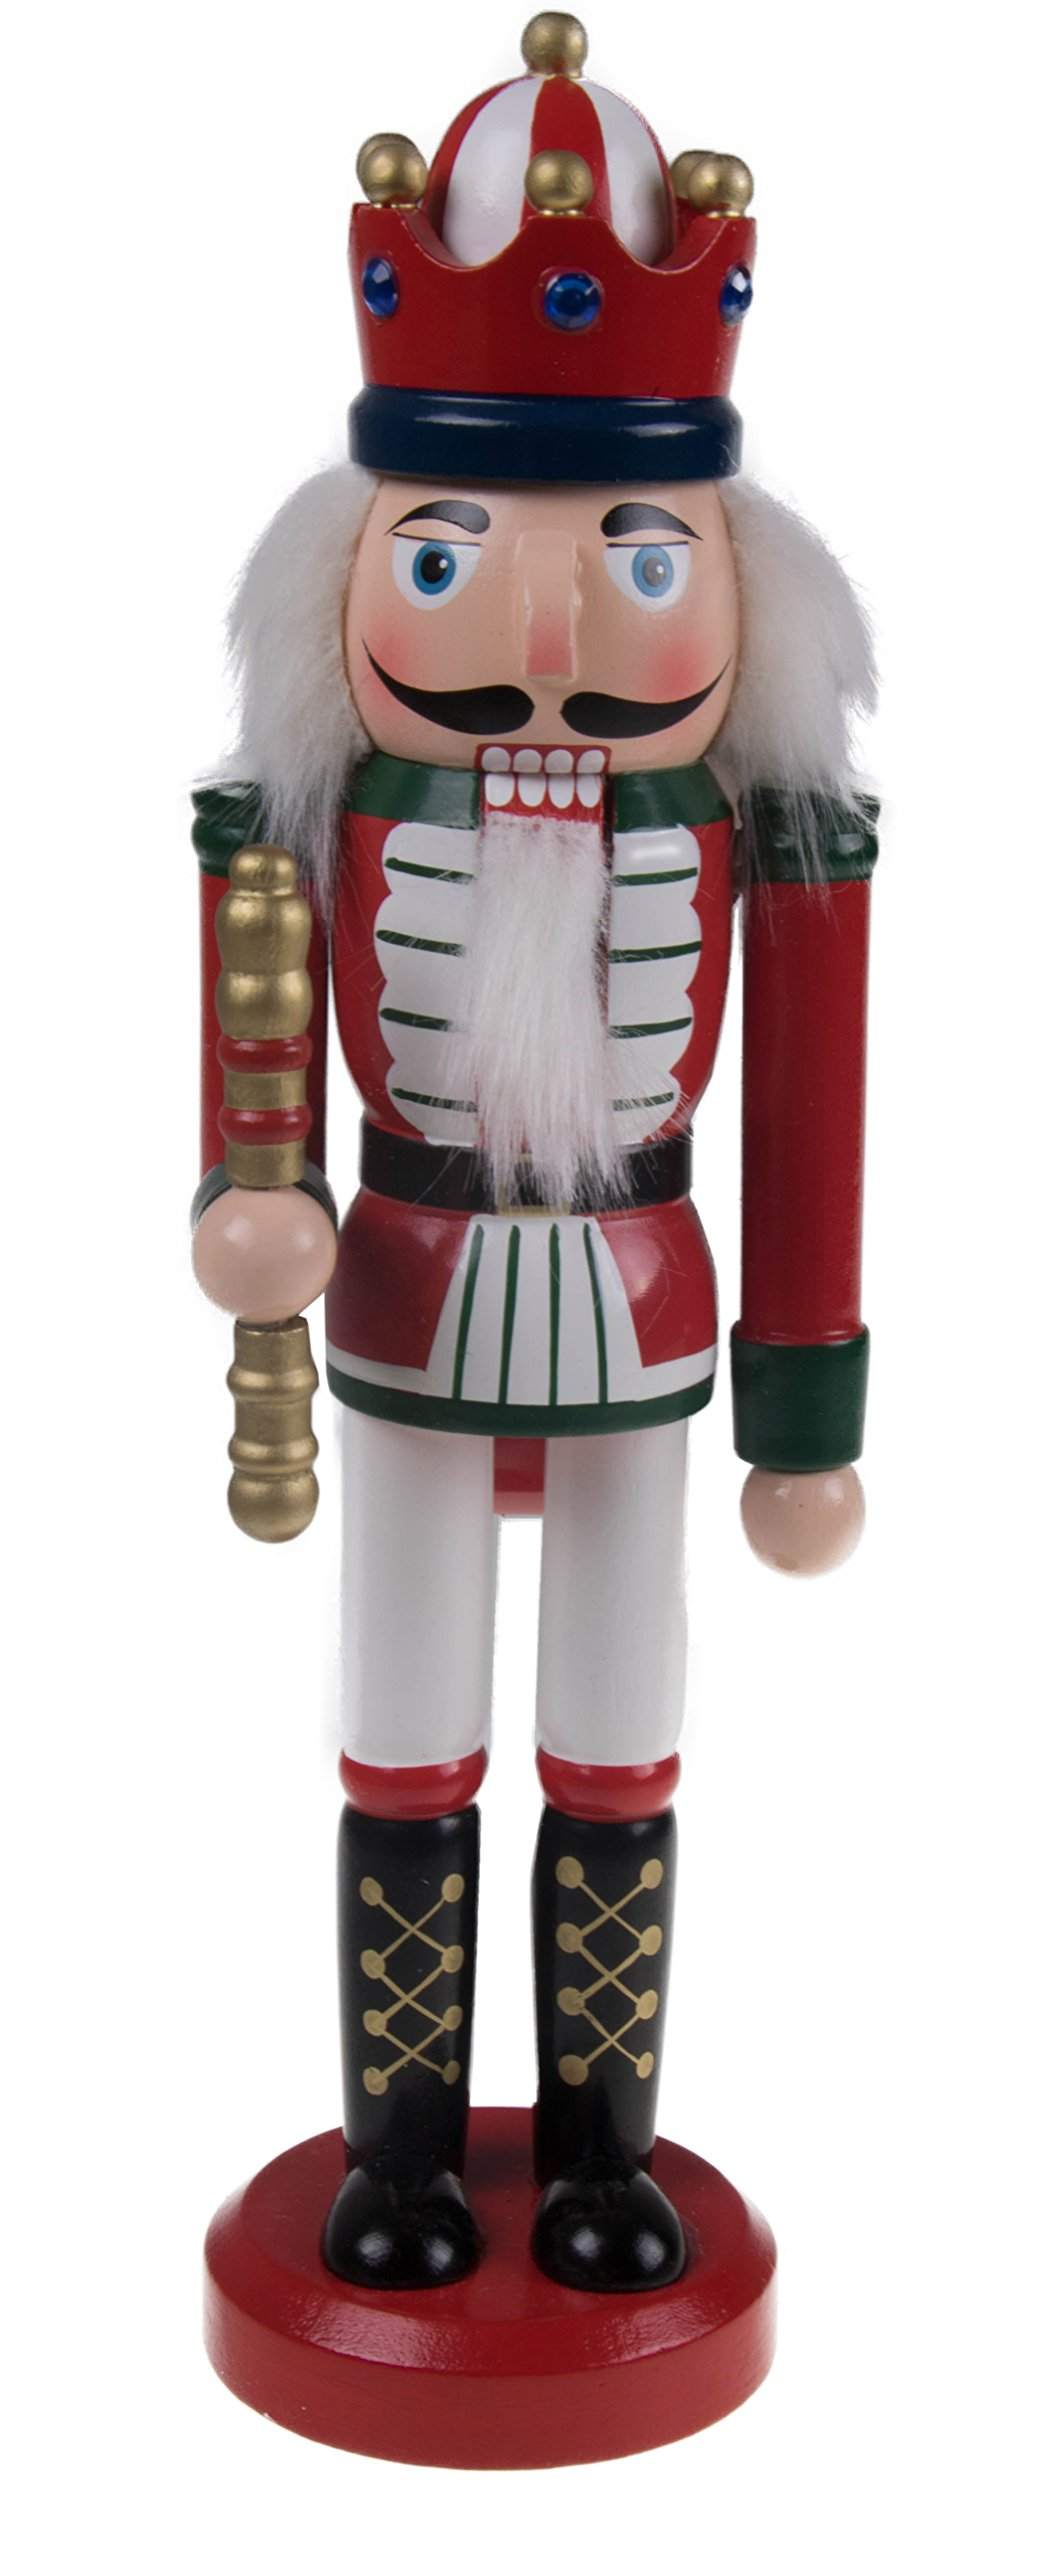 "Classic Red King Nutcracker by Clever Creations | Traditional Uniform | Holding Scepter | Highly Collectible Nutcracker | Festive Christmas Decor | Perfect for Any Decor Theme | 100% Wood | 10"" Tall"